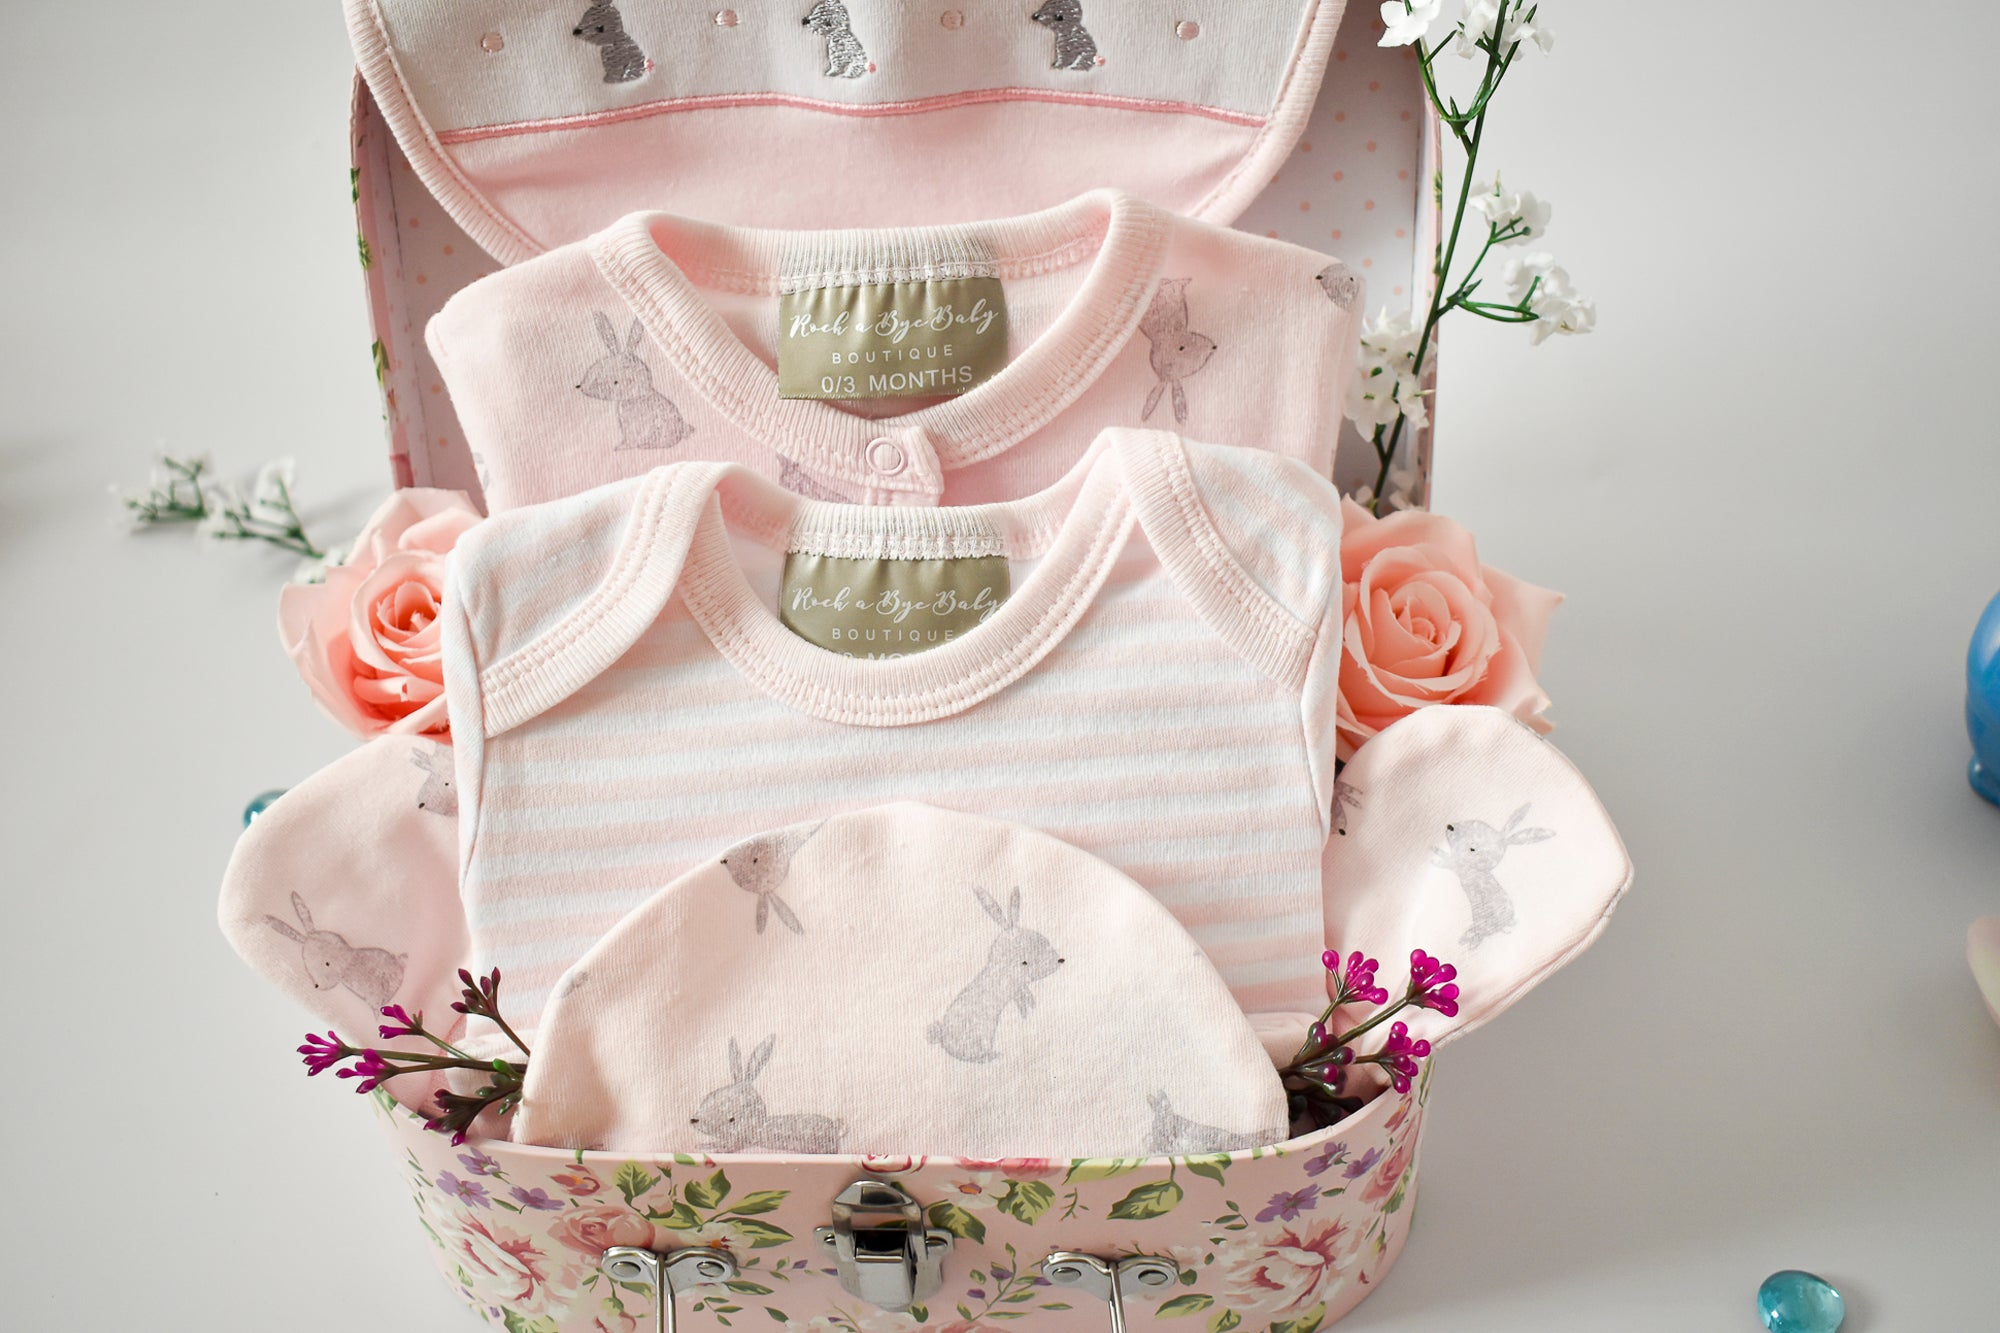 BUNNY and STRIPES Pink Baby Hamper, 5-Piece Set, Sleepsuit, Bodysuit, Hat, Mittens, Bib, Girl Baby Hamper, Keepsake Gift Box